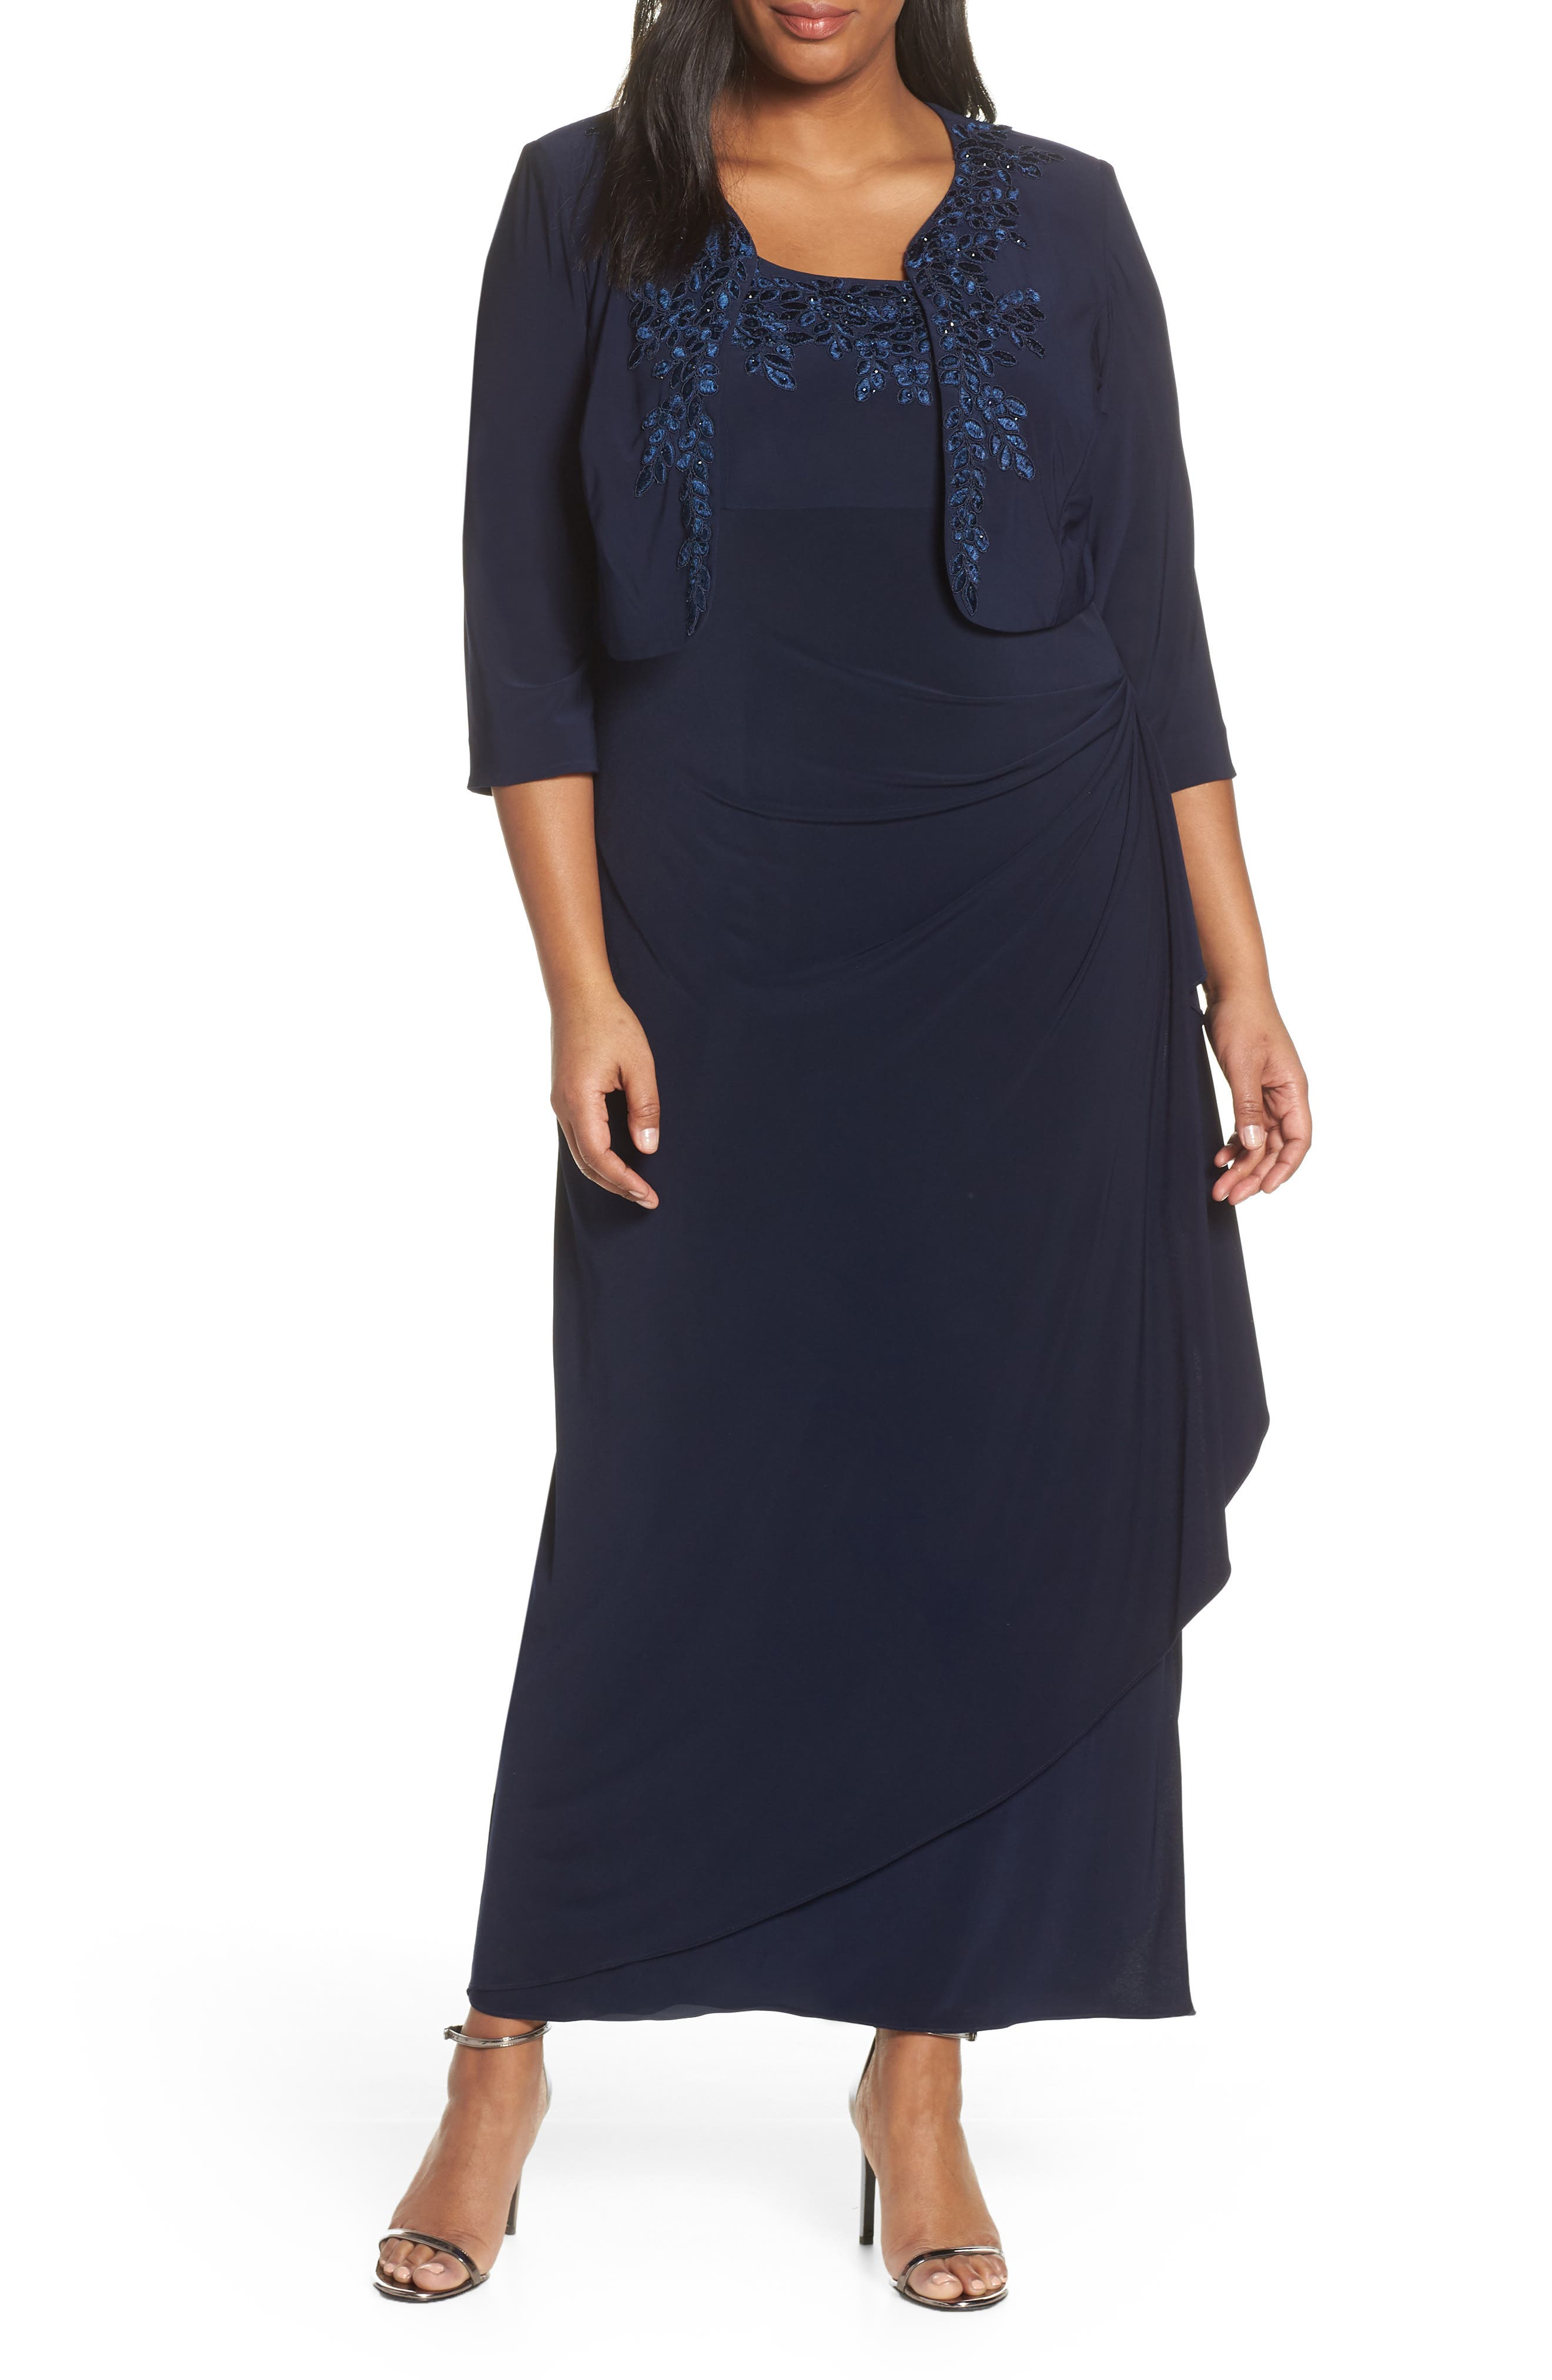 Plus Size Alex Evenings Side Ruched Evening Dress With Bolero, Blue